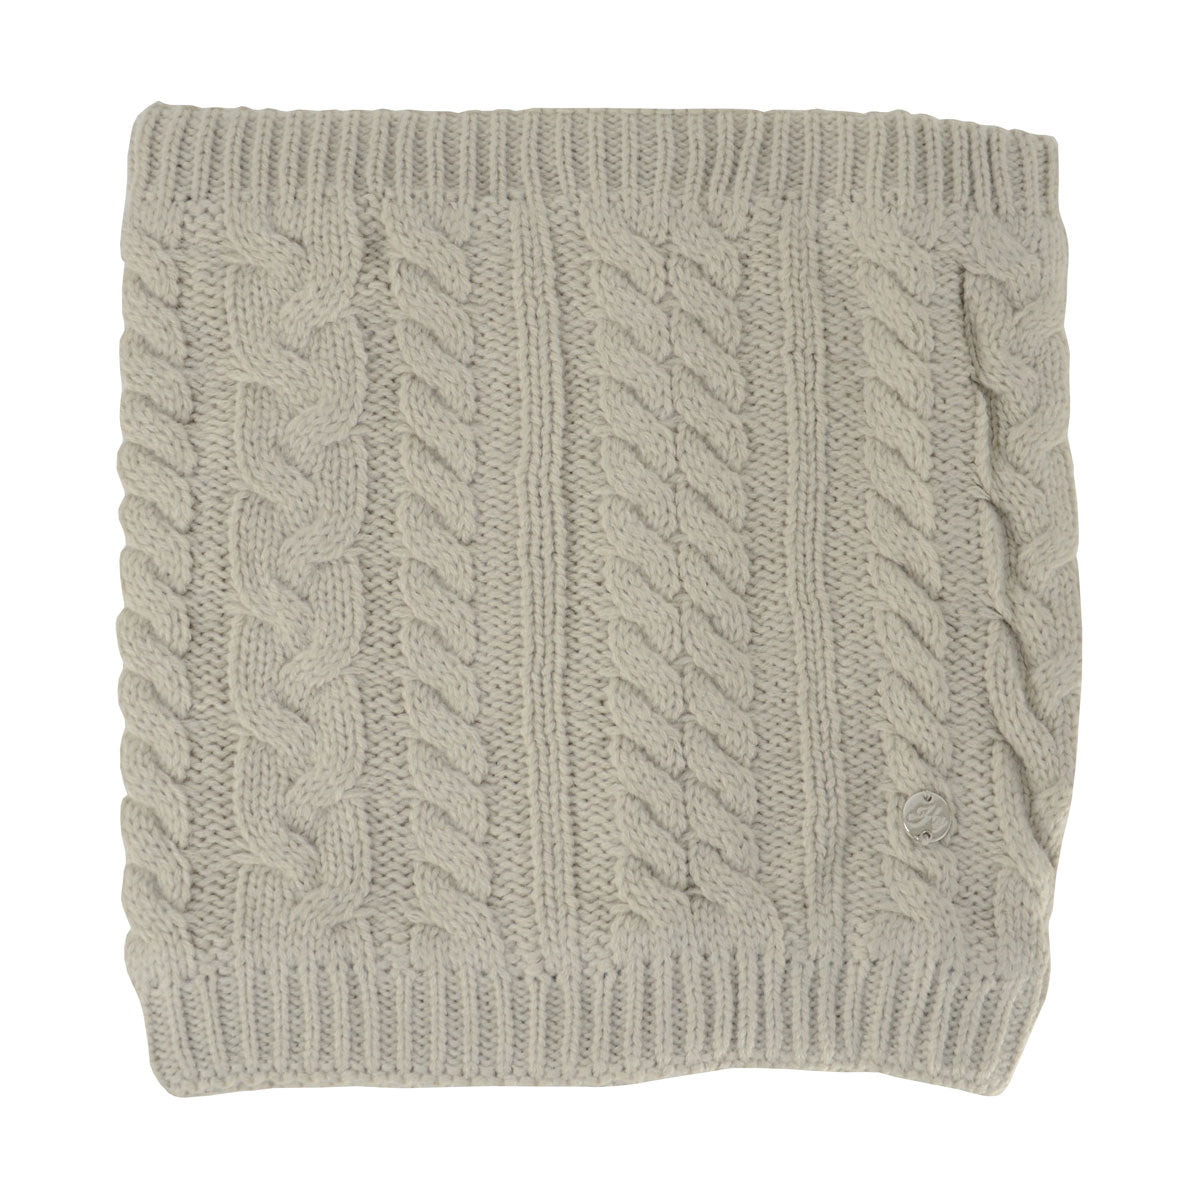 HyFASHION Meribel Cable Knit Snood